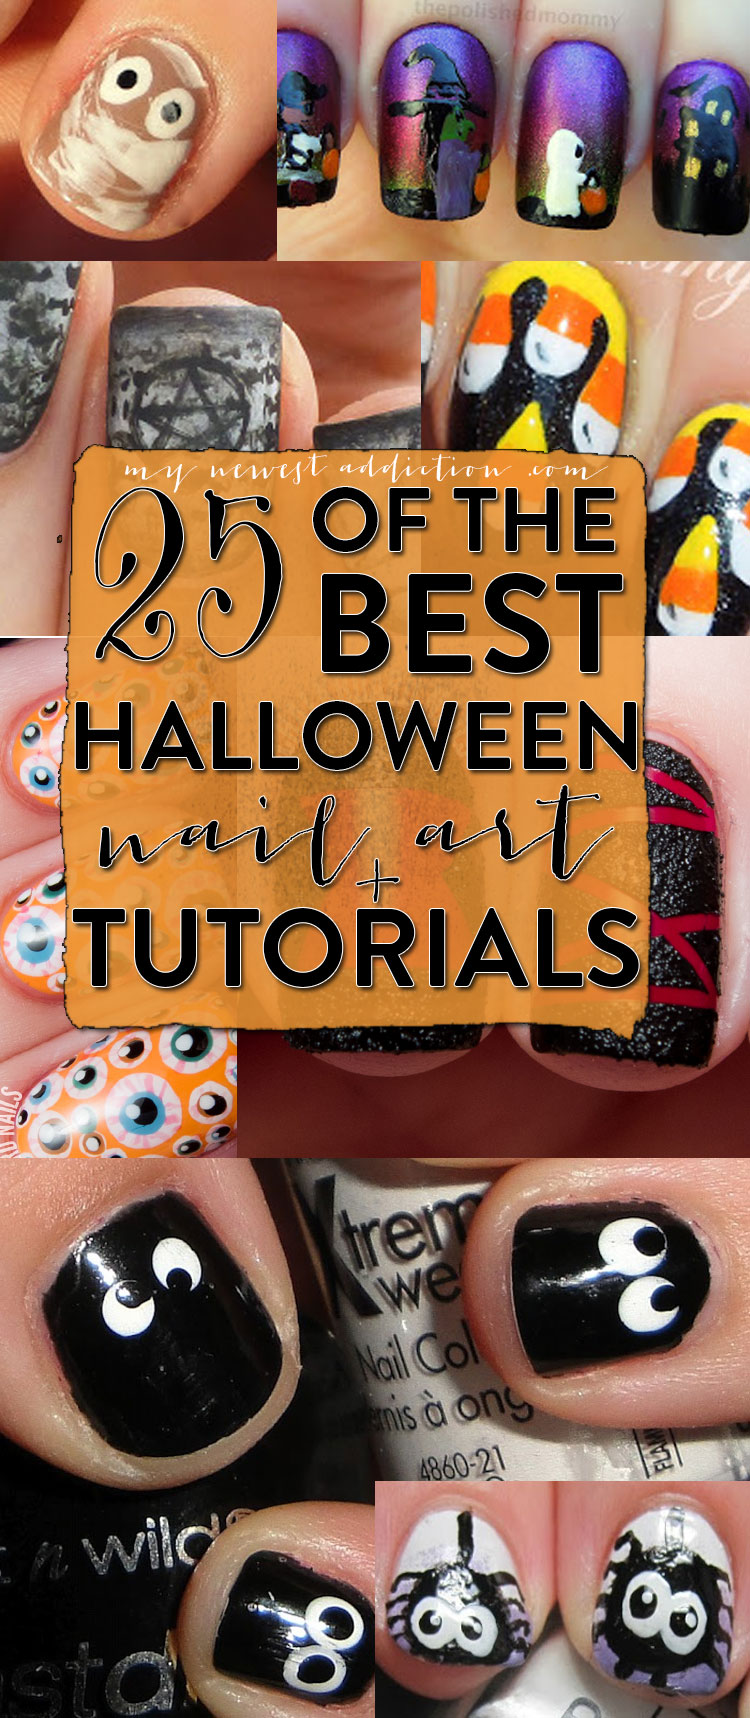 25 Of The Best Halloween Nail Art + Tutorials